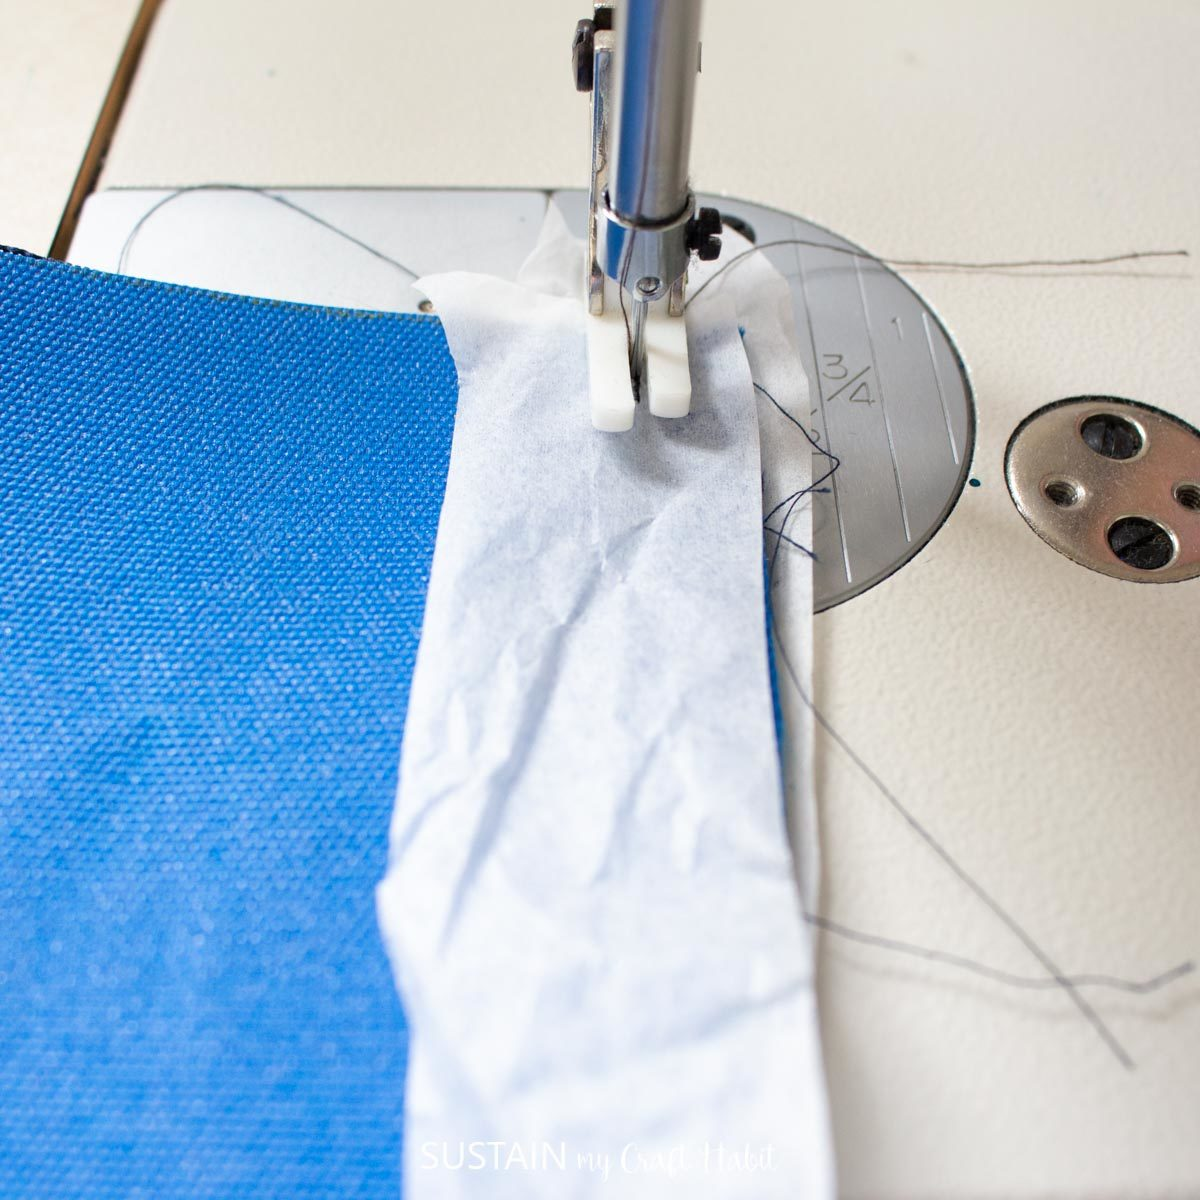 Adding a layer of tissue paper between the fabric and sewing.